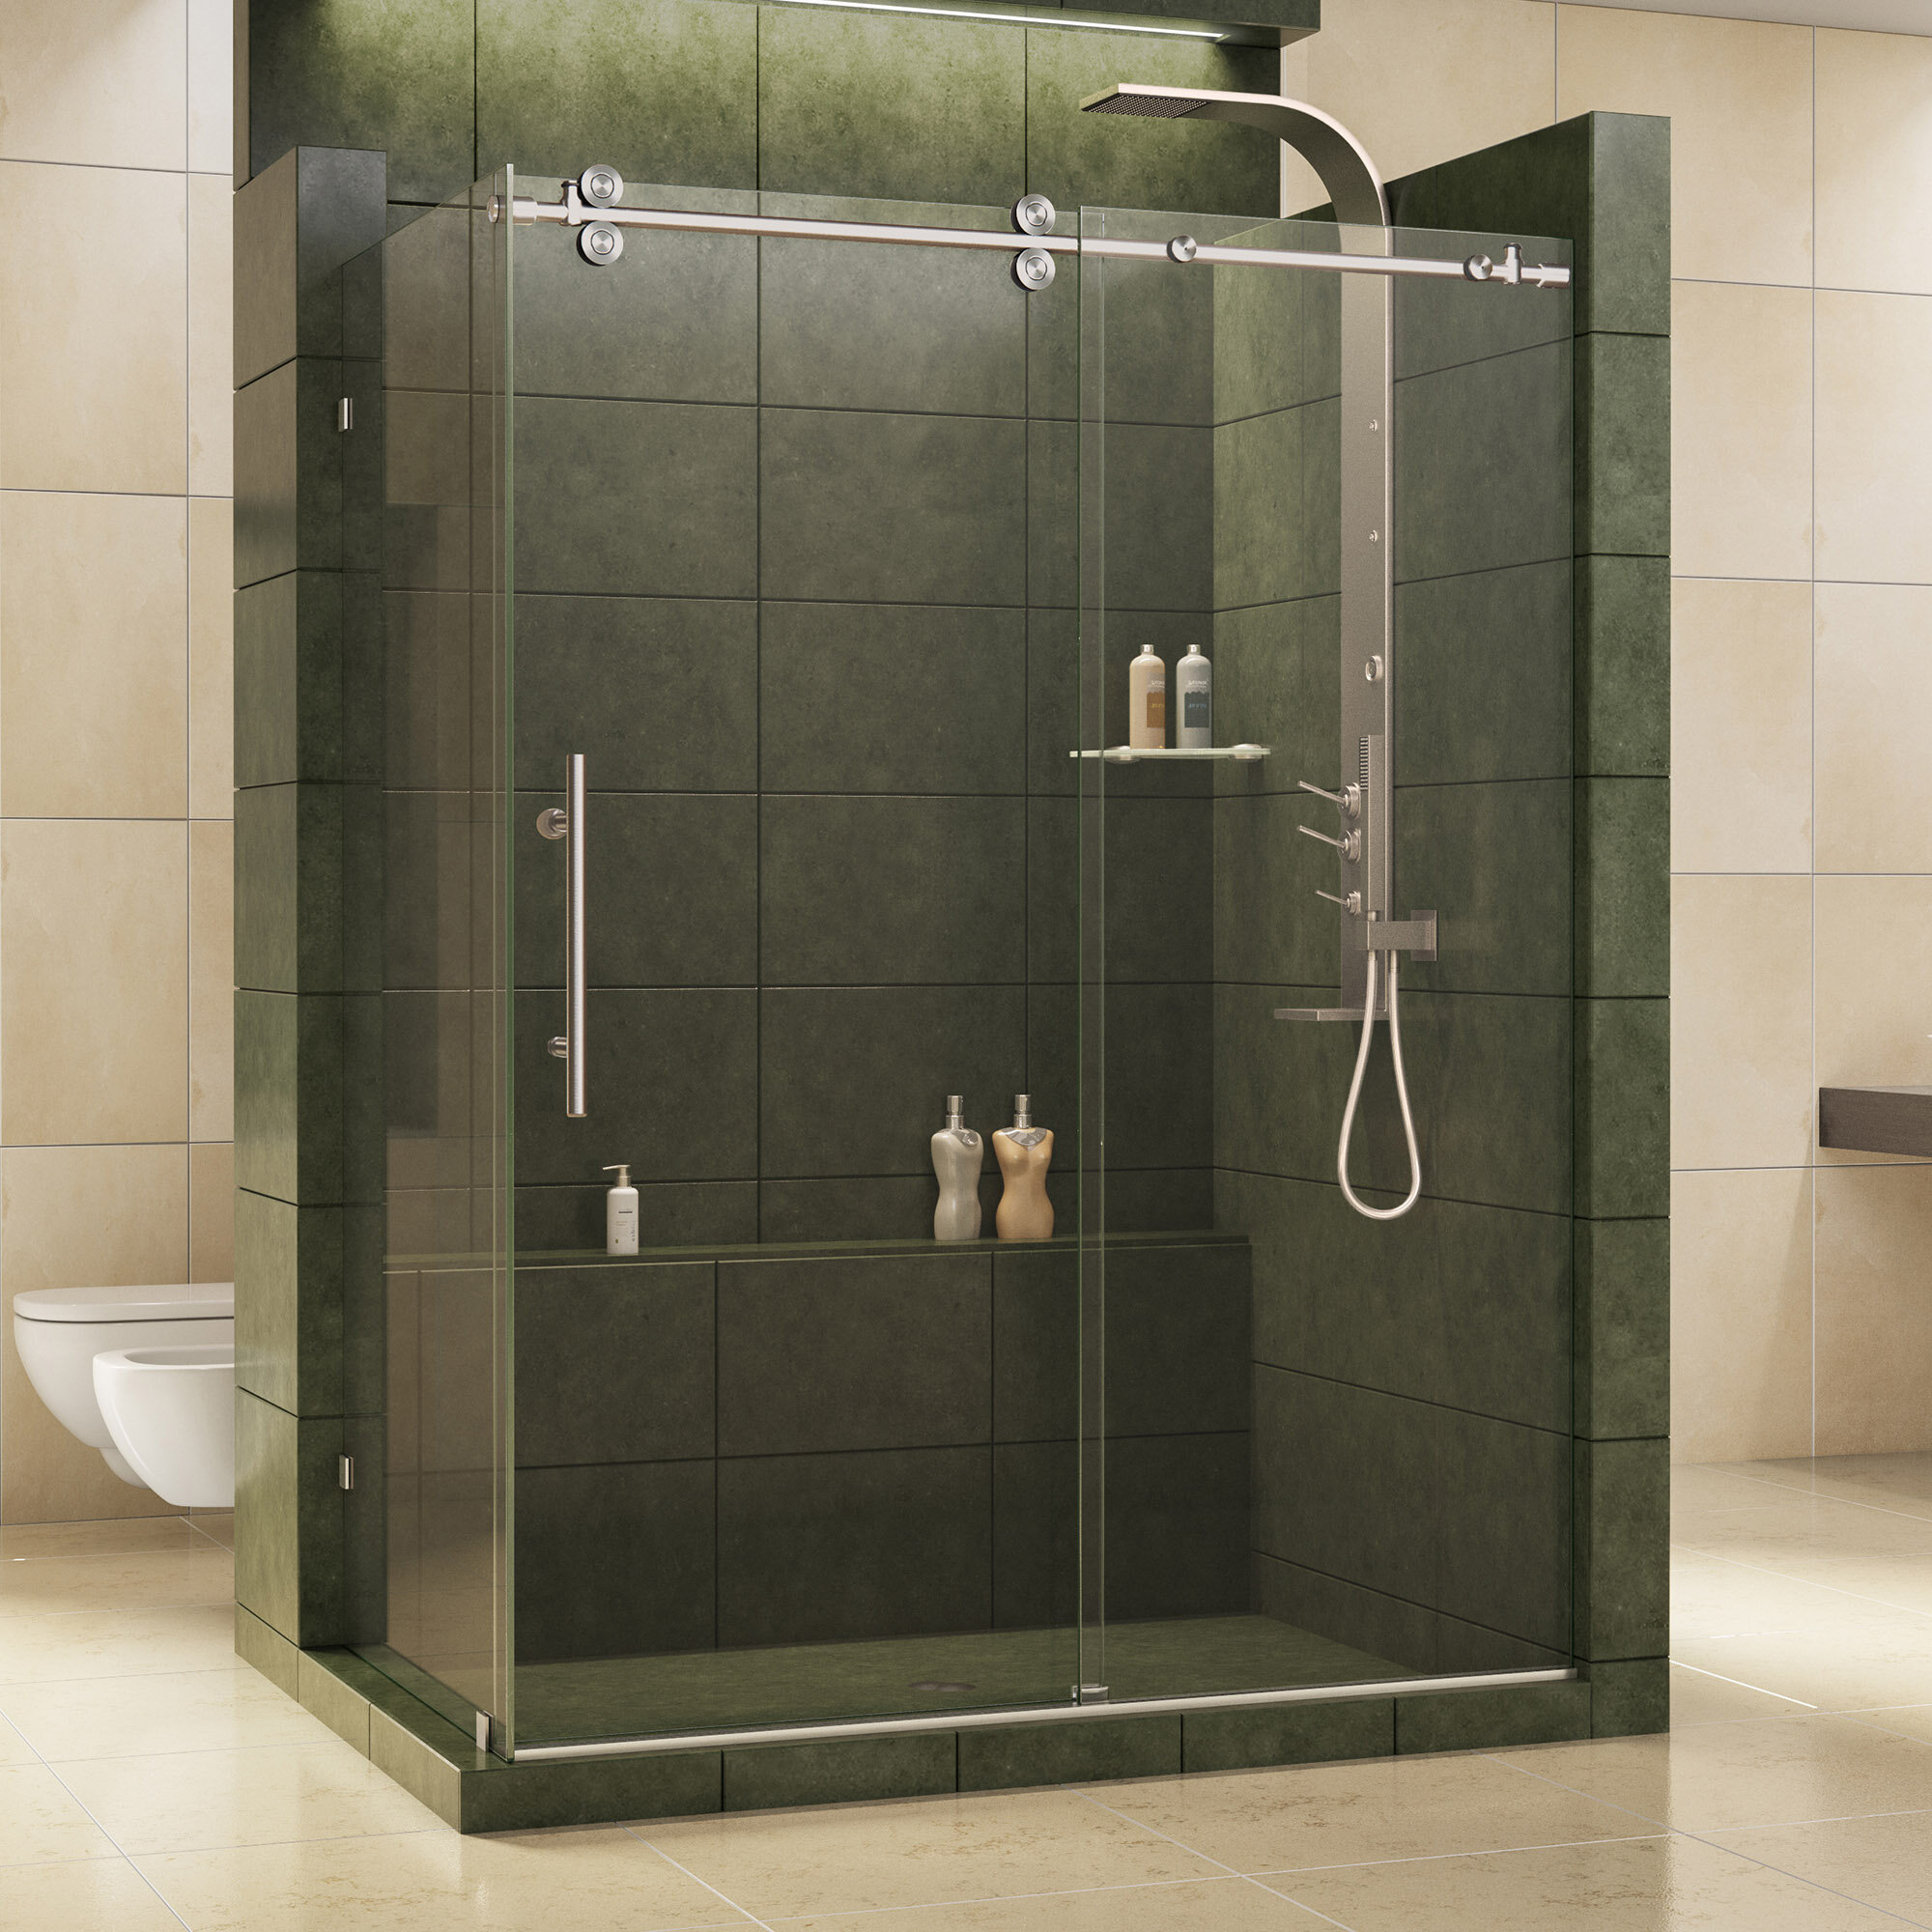 Dreamline Enigma 605 X 79 Single Sliding Frameless Shower Door